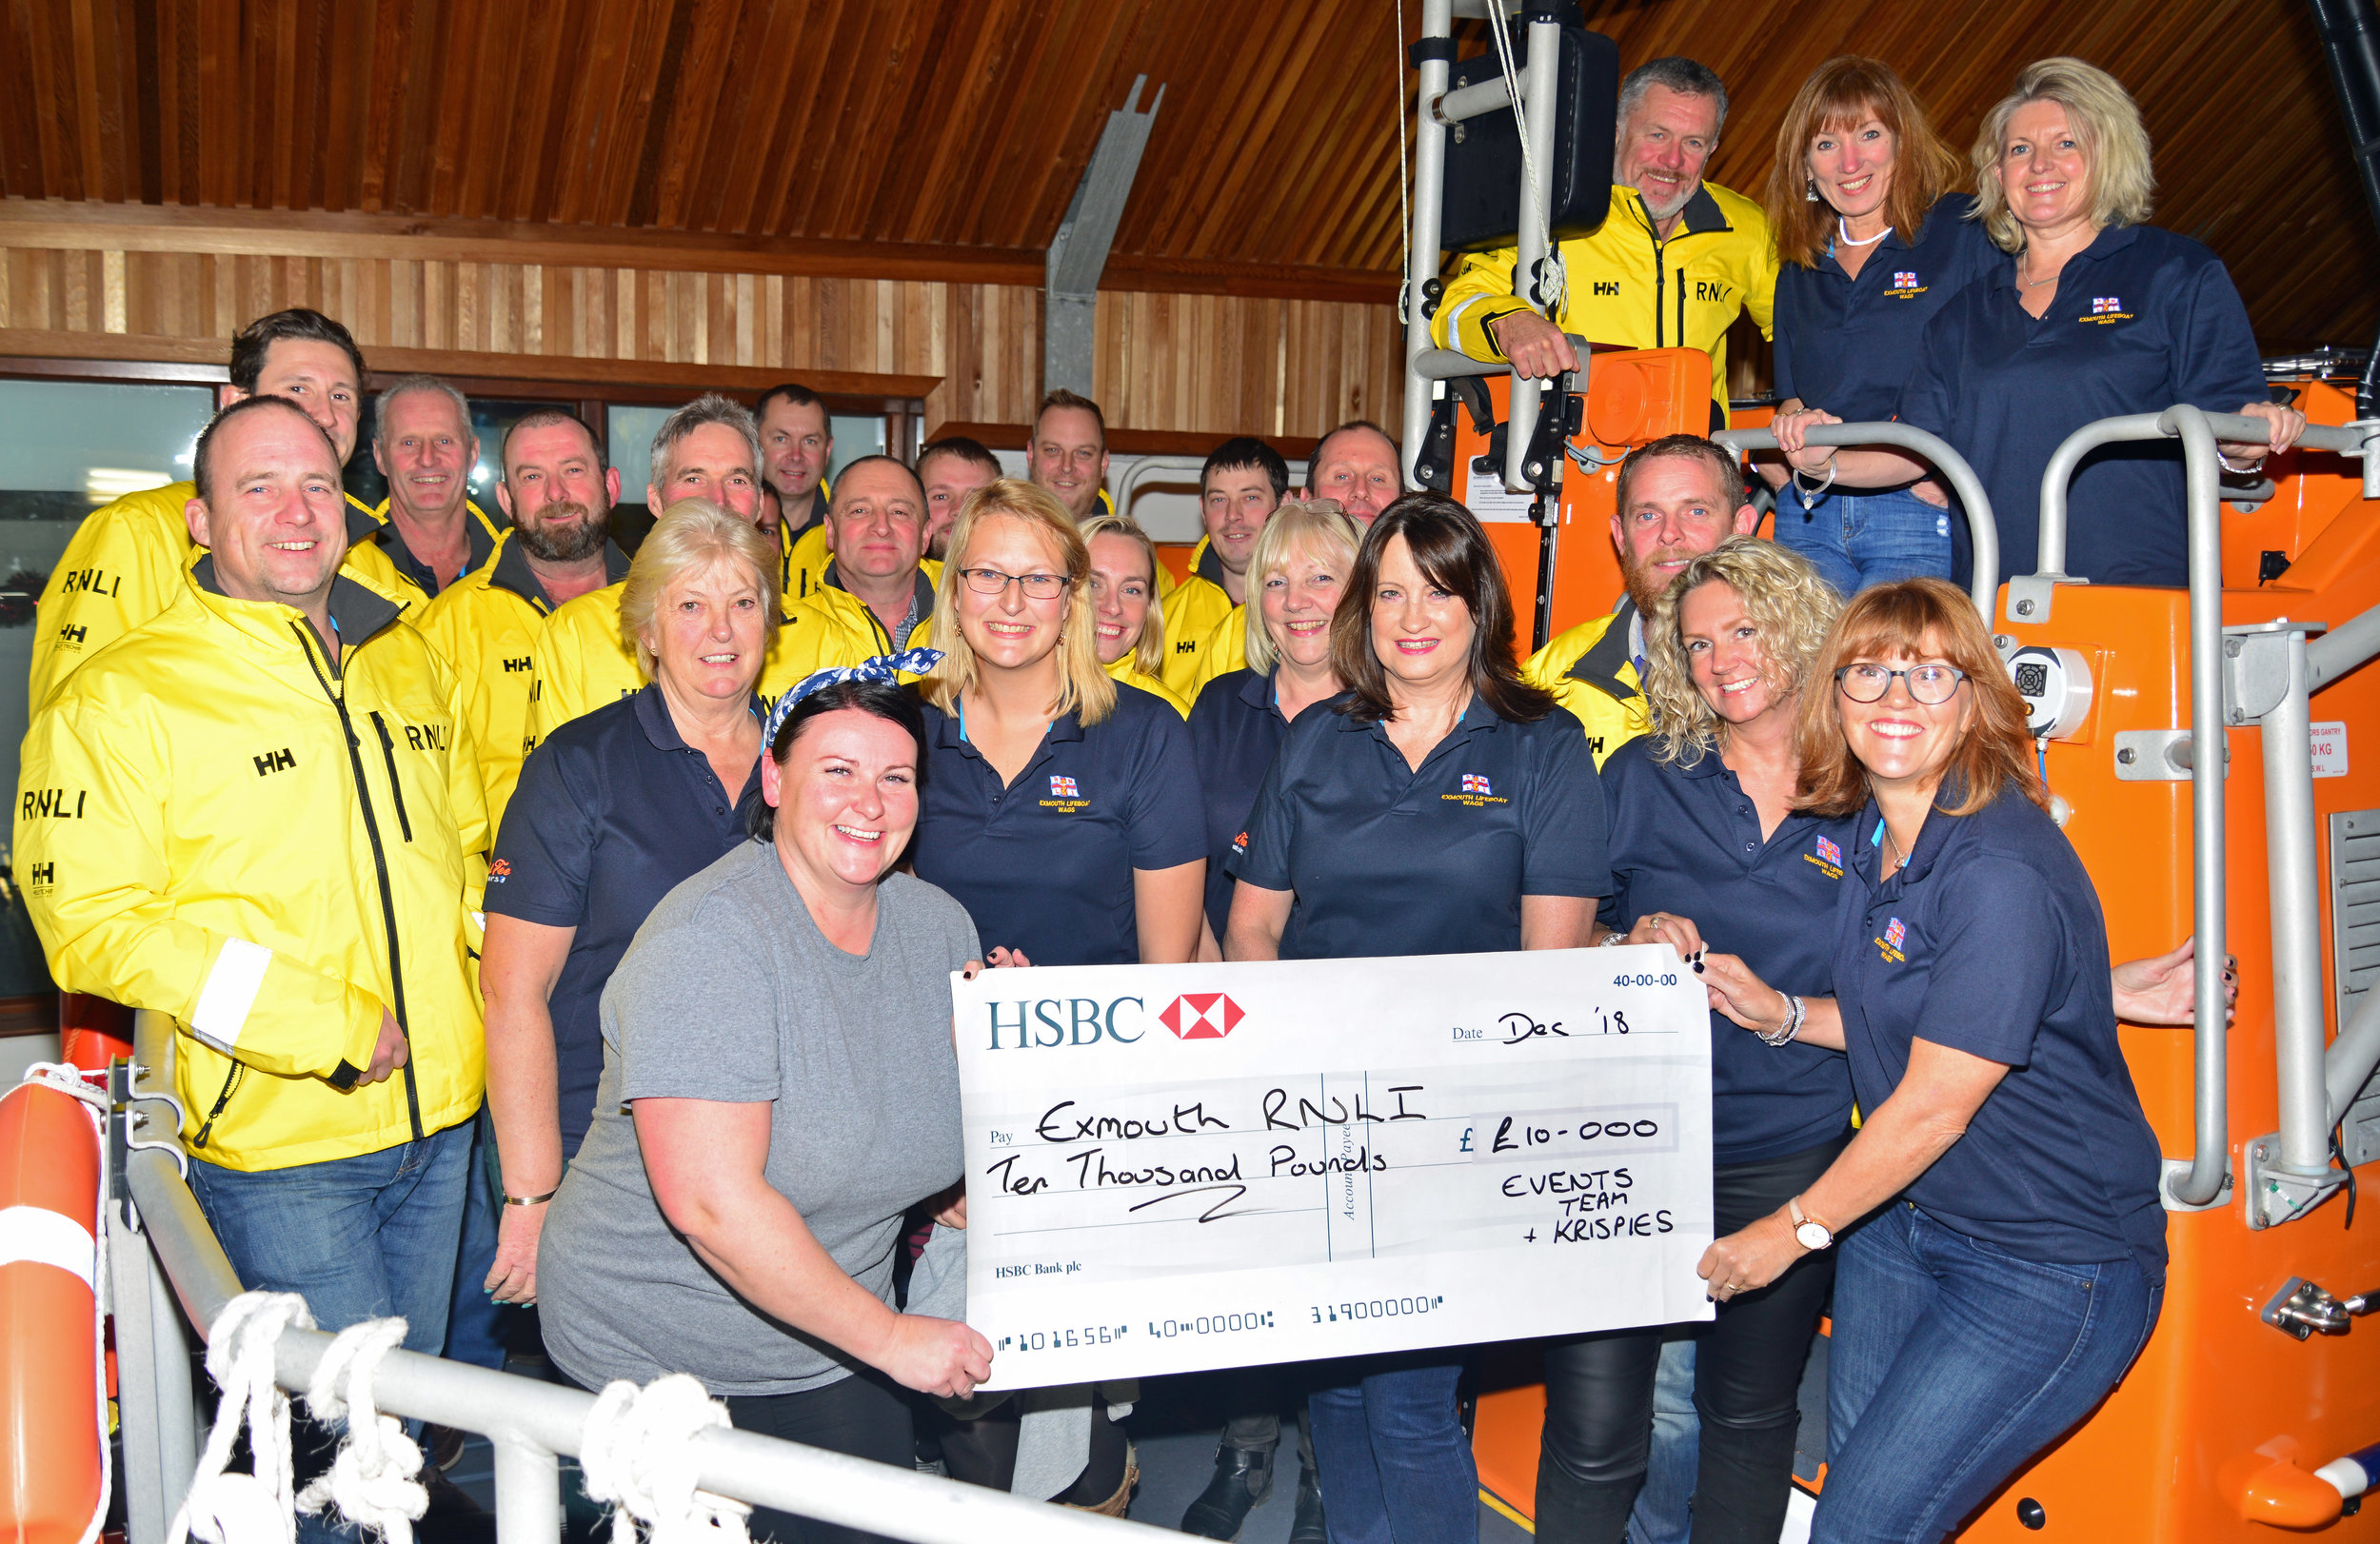 We were delighted to hand over a cheque to Exmouth RNLI for the £10,000 raised at the Fish & Chip Ball in September 2018.